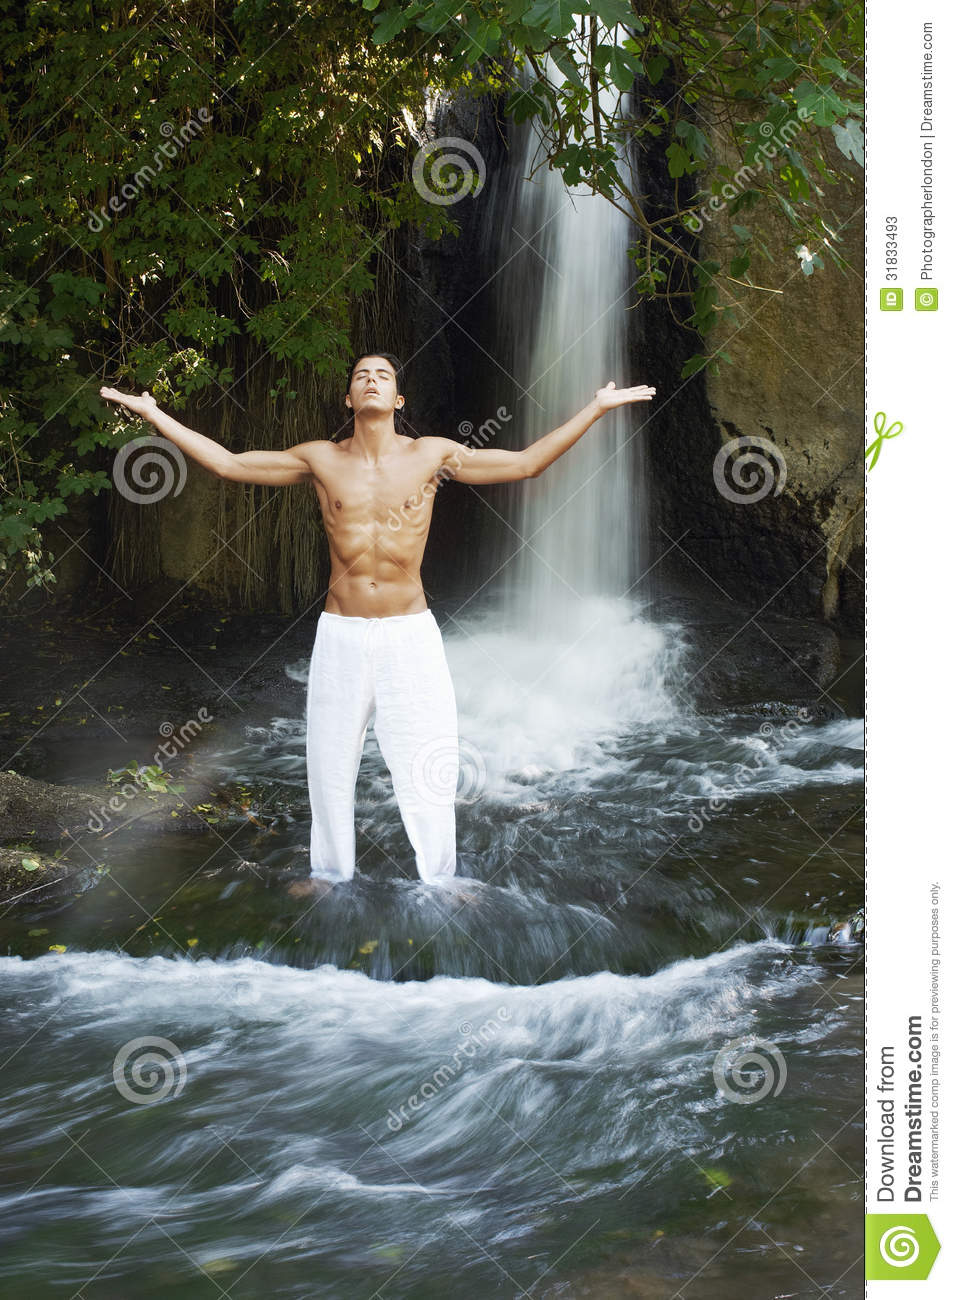 Man With Arms Outstretched Meditating Against Waterfall